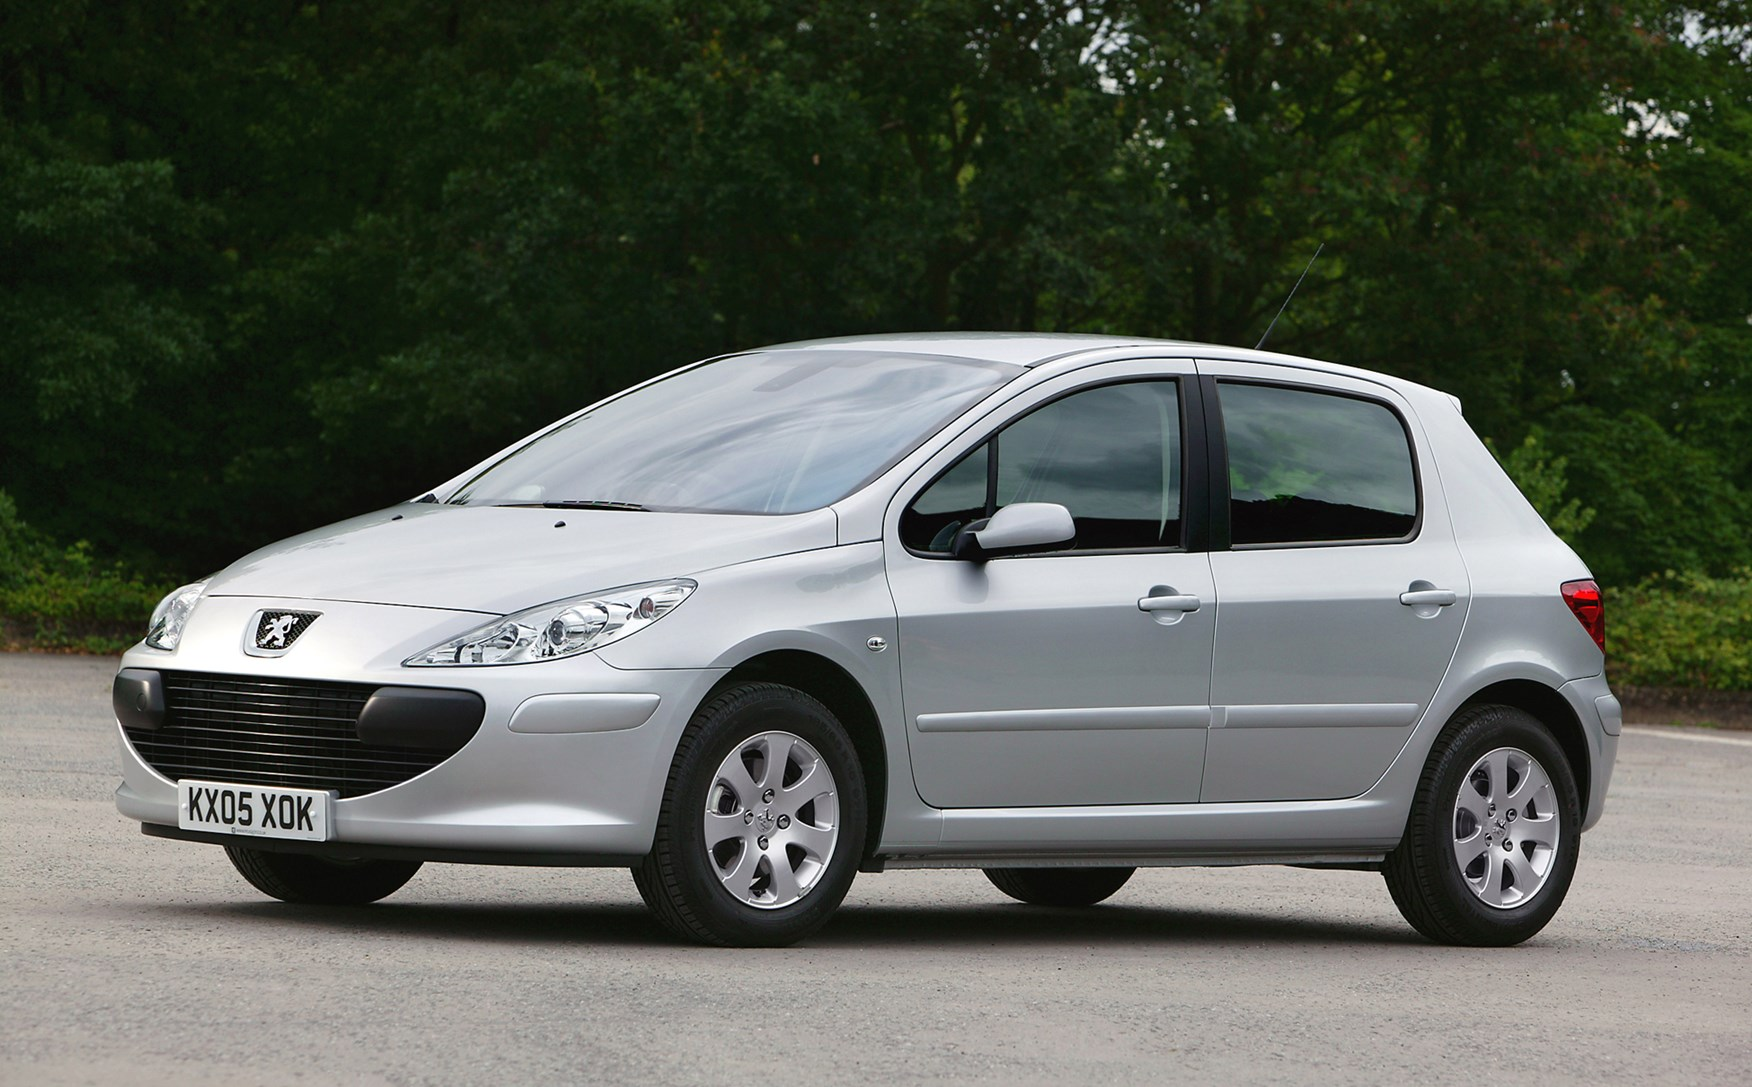 peugeot 307 hatchback review 2001 2007 parkers. Black Bedroom Furniture Sets. Home Design Ideas